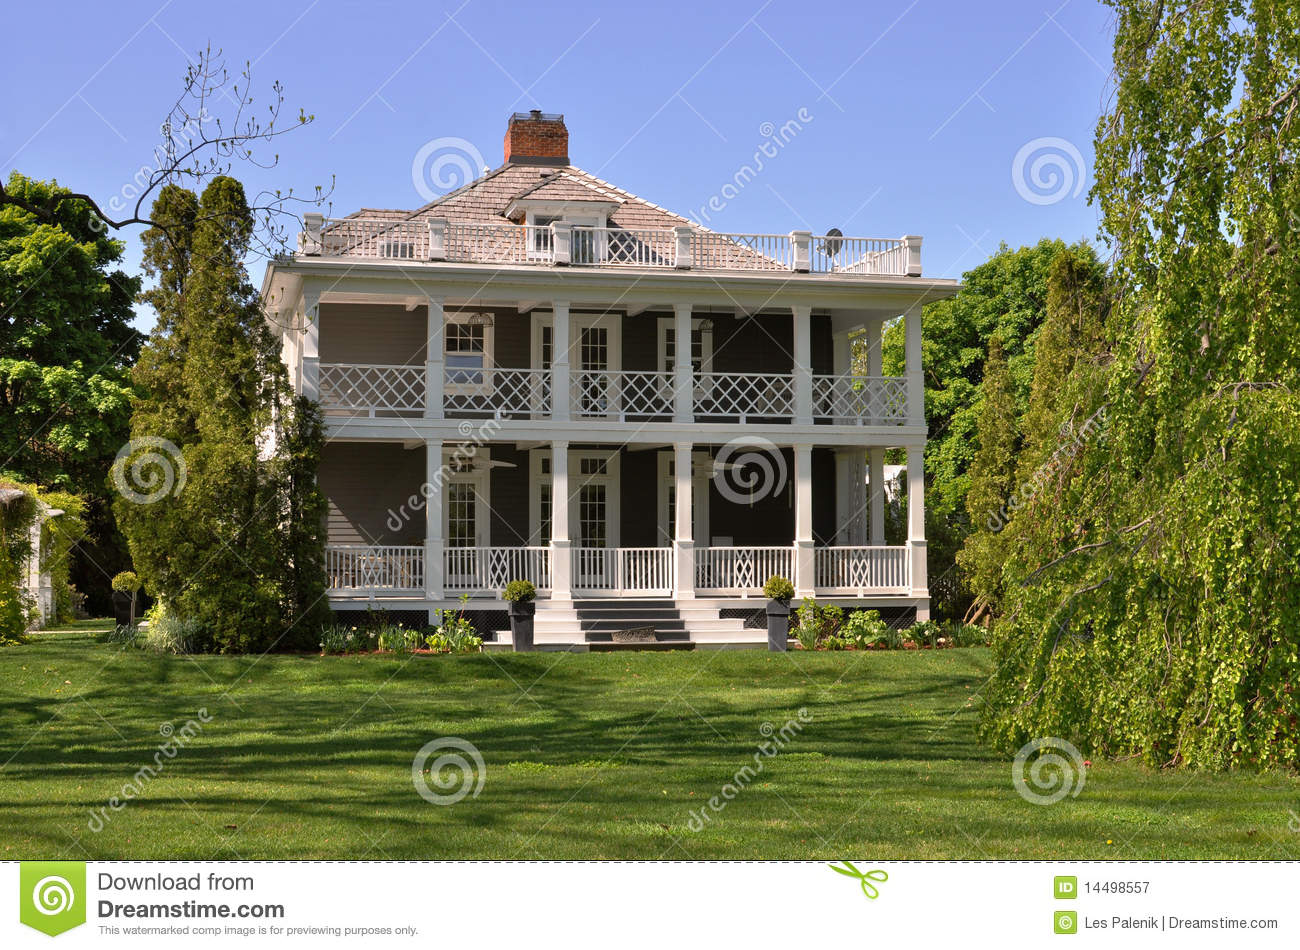 Summer house with balconies royalty free stock photography image 14498557 - Houses with covered balconies ...